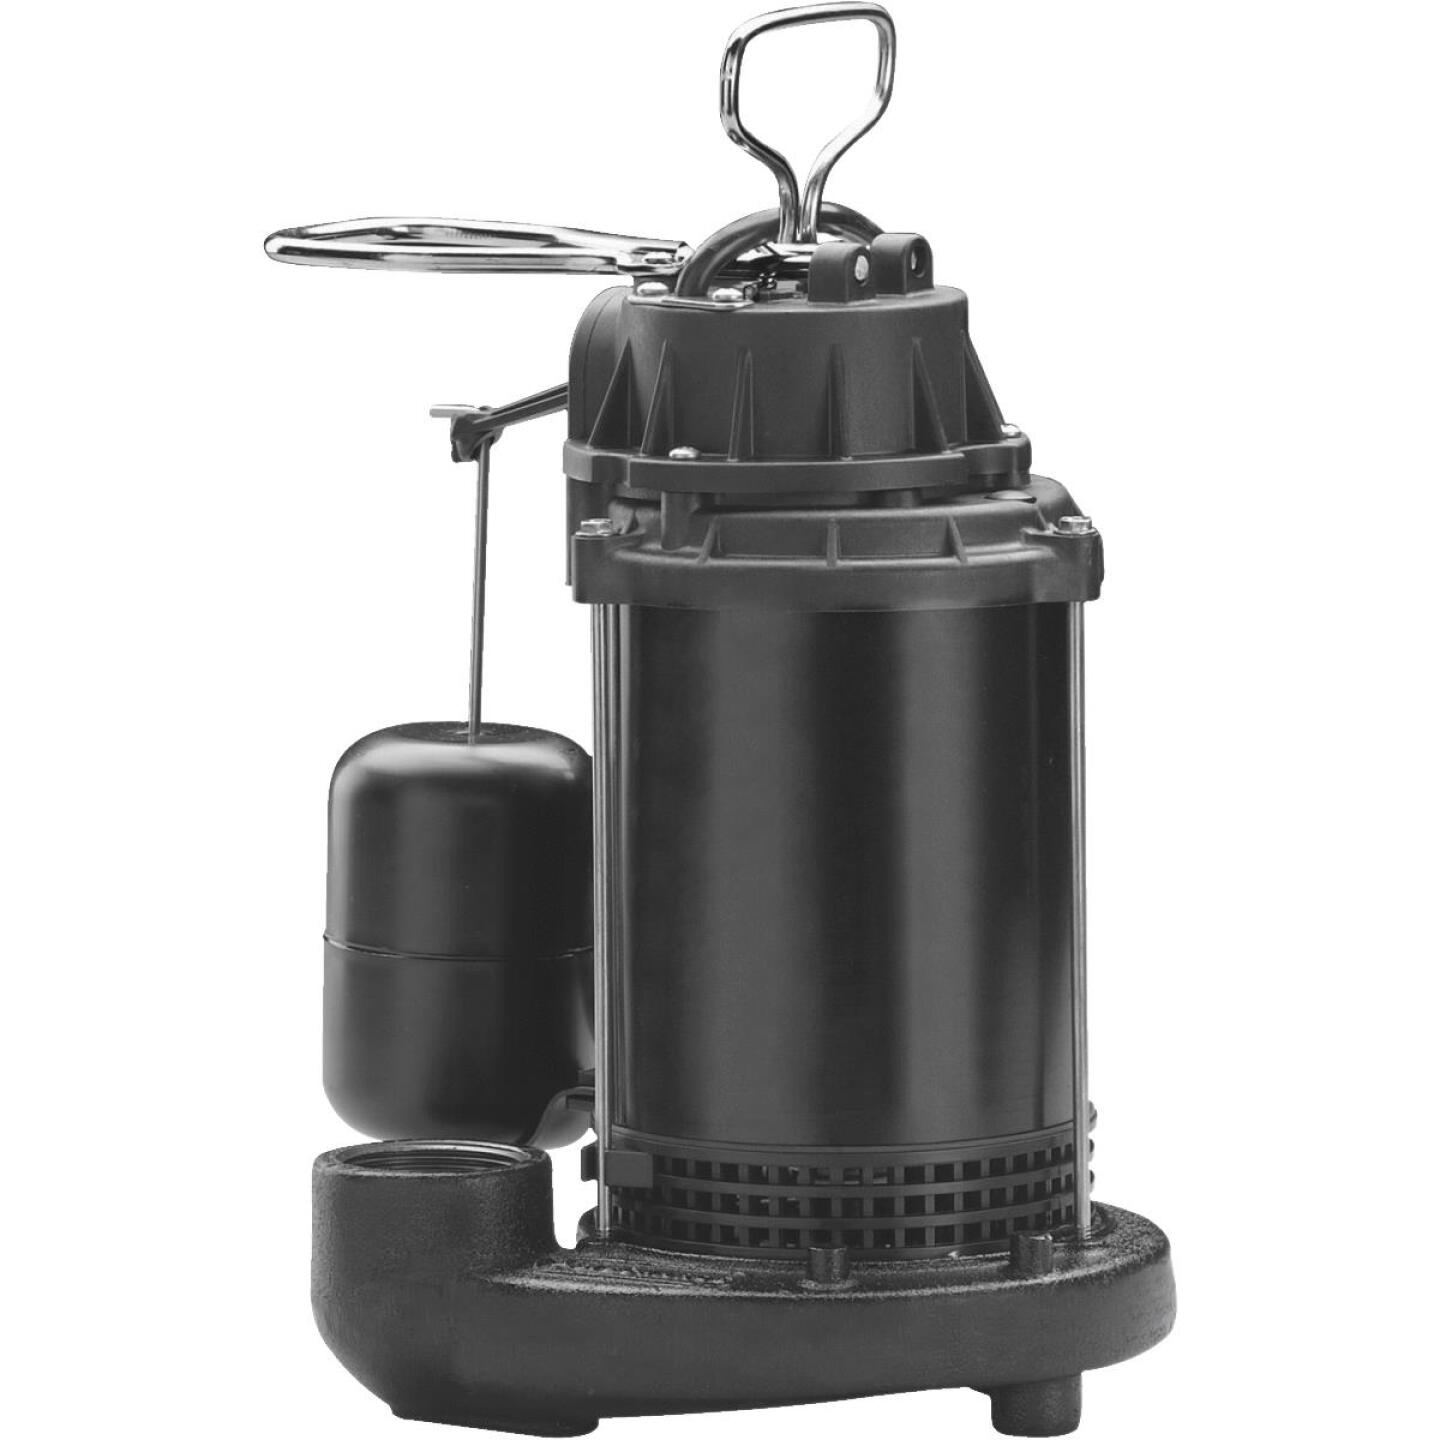 Wayne Water System 1/3 HP 115V Cast-Iron Submersible Sump Pump Image 1